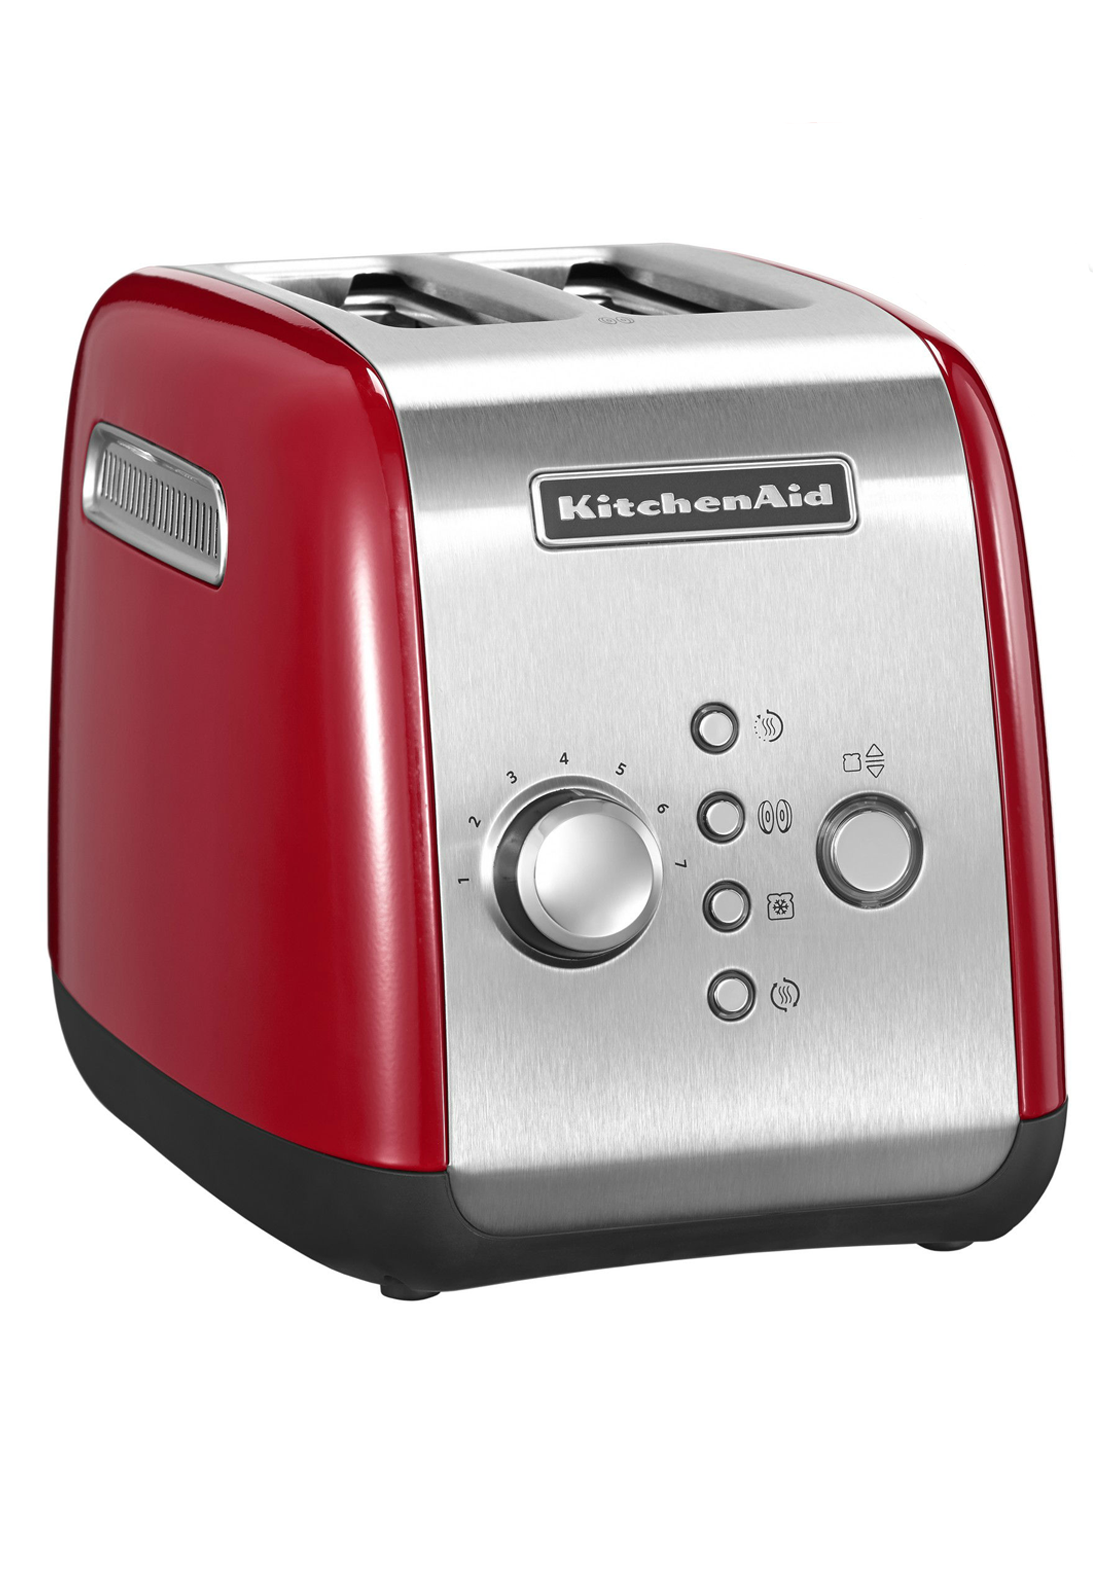 KitchenAid 2 Slice Motorized Toaster, Berry Red